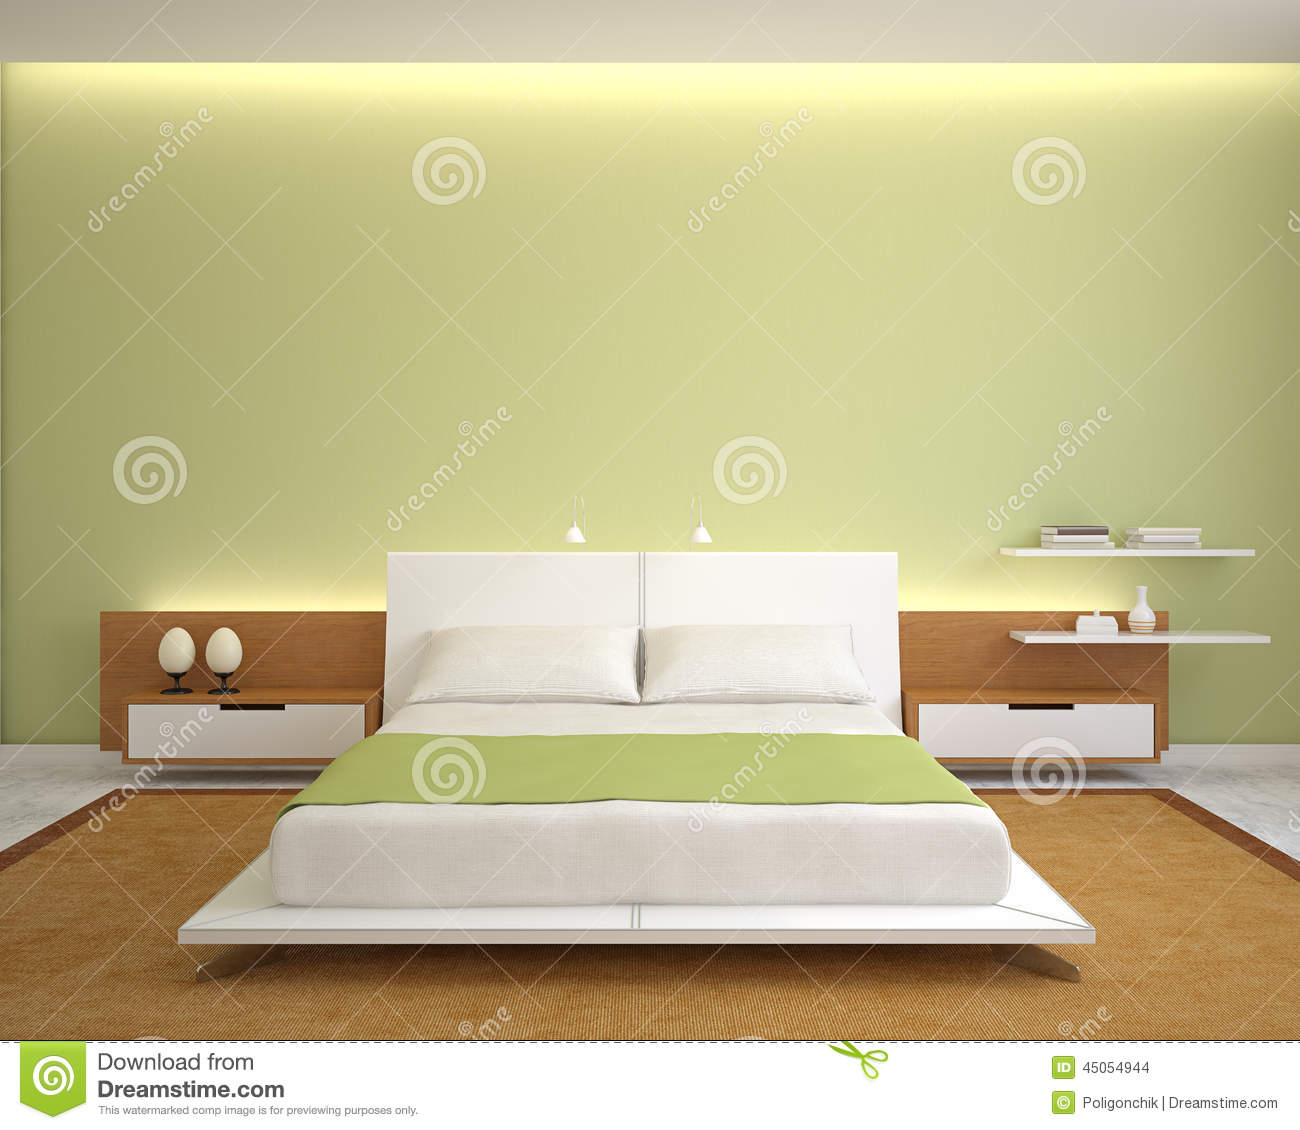 Modern Bedroom Interior Stock Illustration Image 45054944